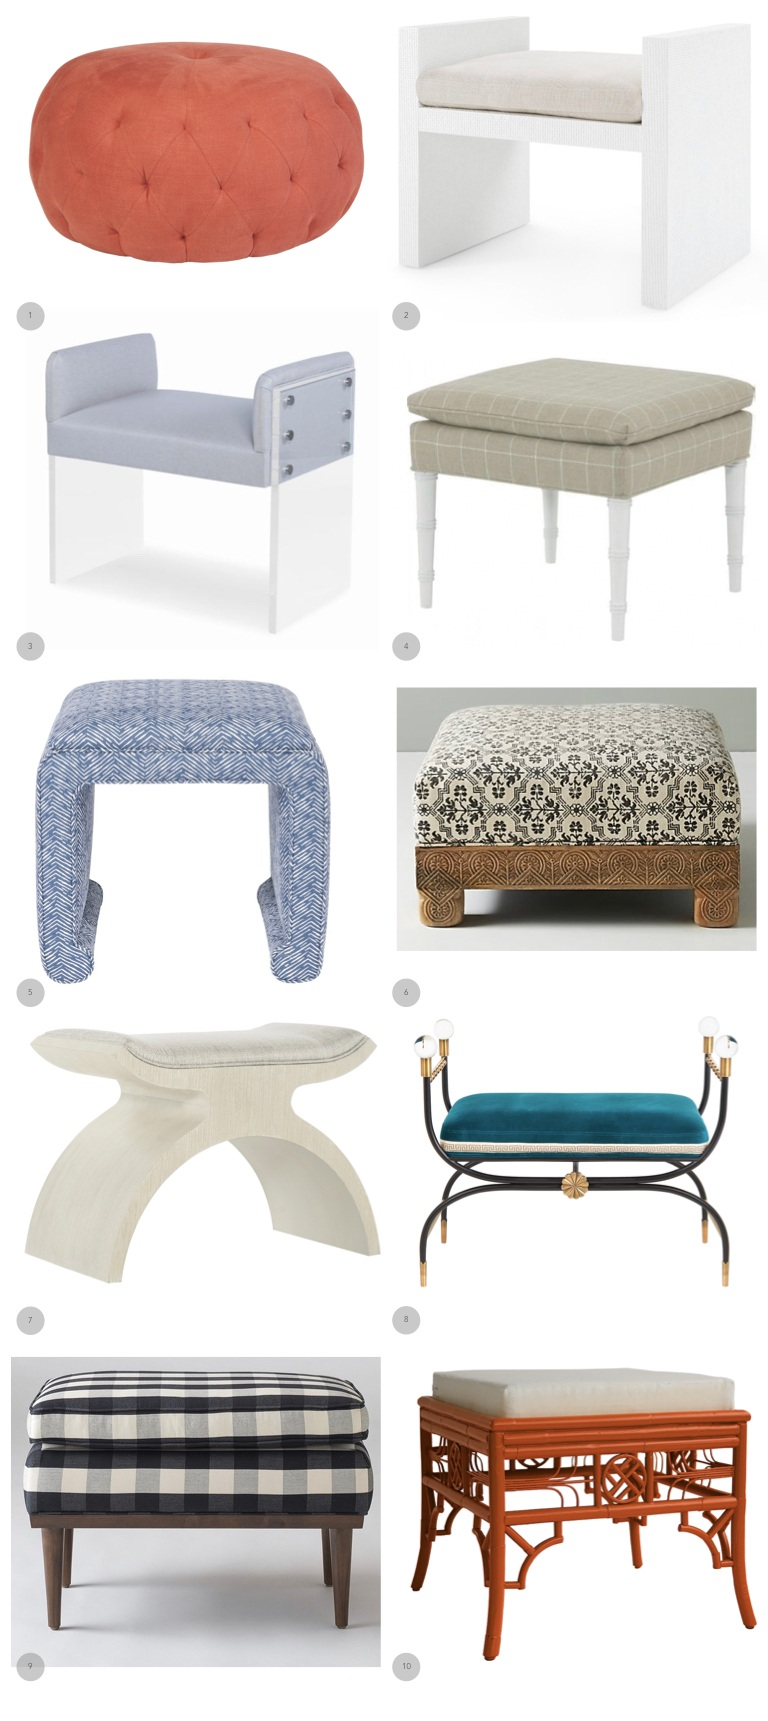 1.  Cisco Brothers  2.  Bungalow 5  3  Century Furniture  4.  Wesley Hall  5.  Vanguard  6.  Anthropologie  7.  Bernhardt  8.  Jonathan Adler  9.  Schoolhouse Electric  10.  Red Egg